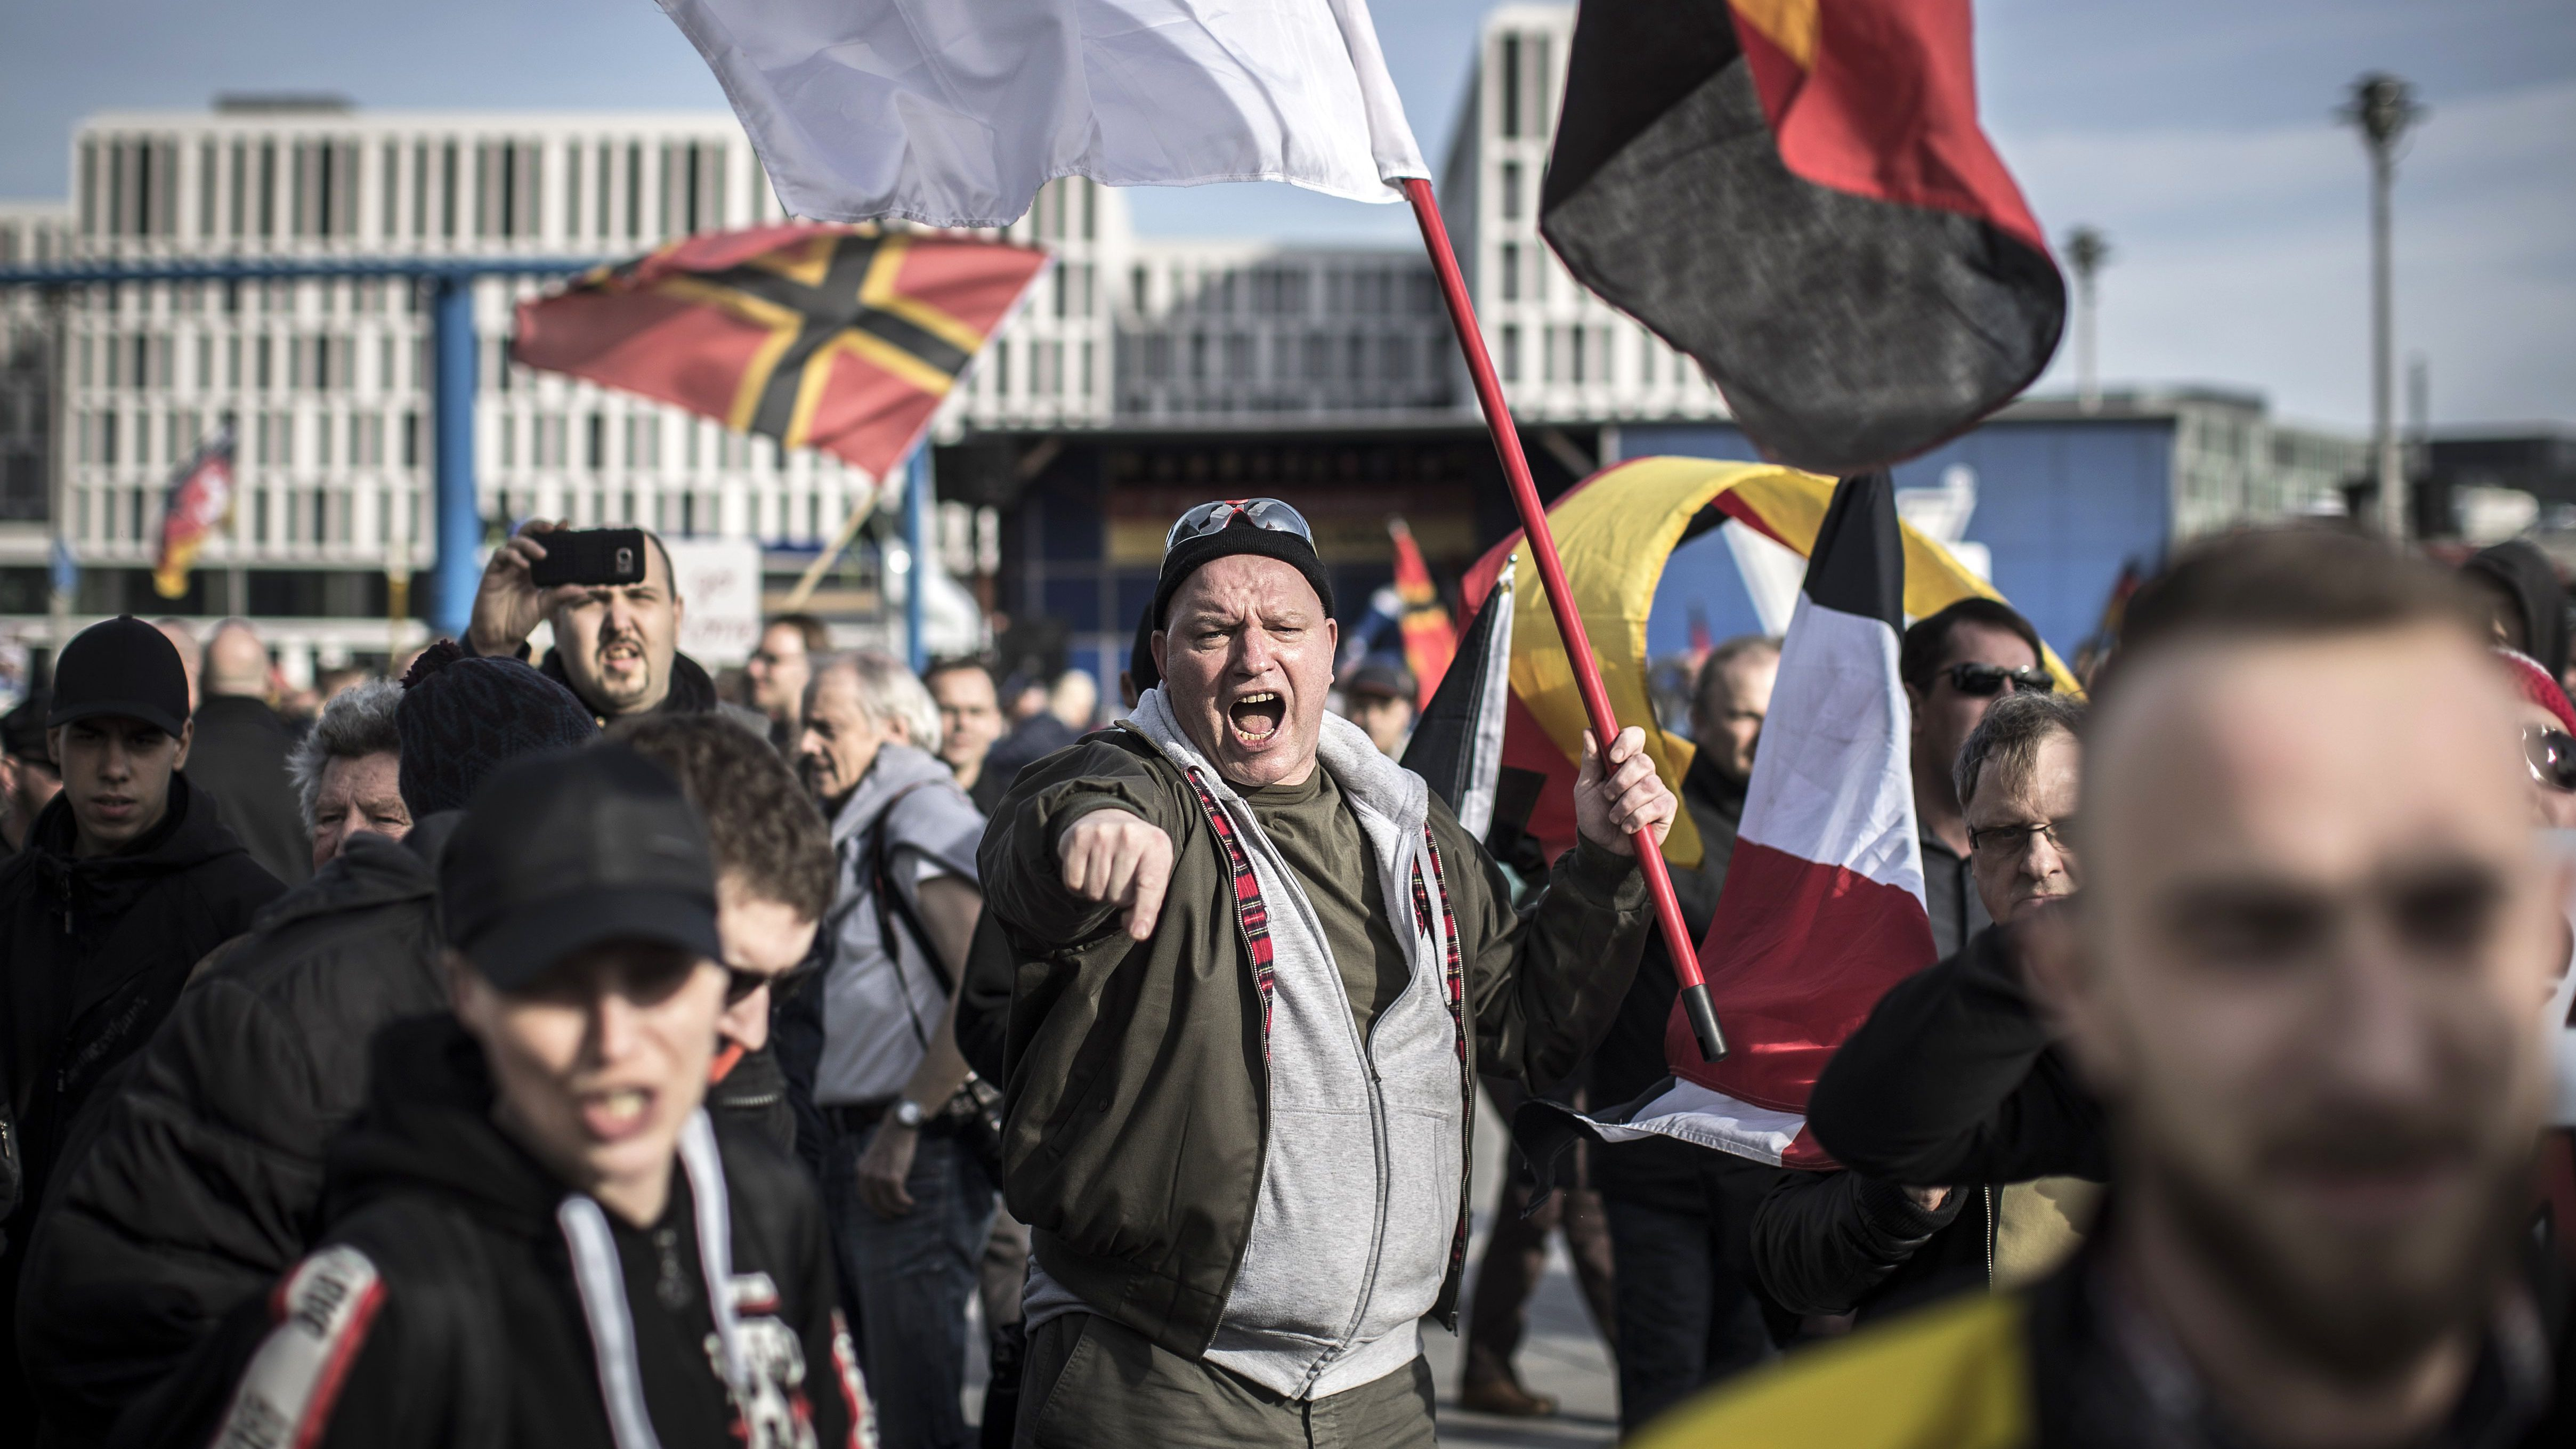 A far-right demonstration in Berlin, Germany, 04 March 2017.